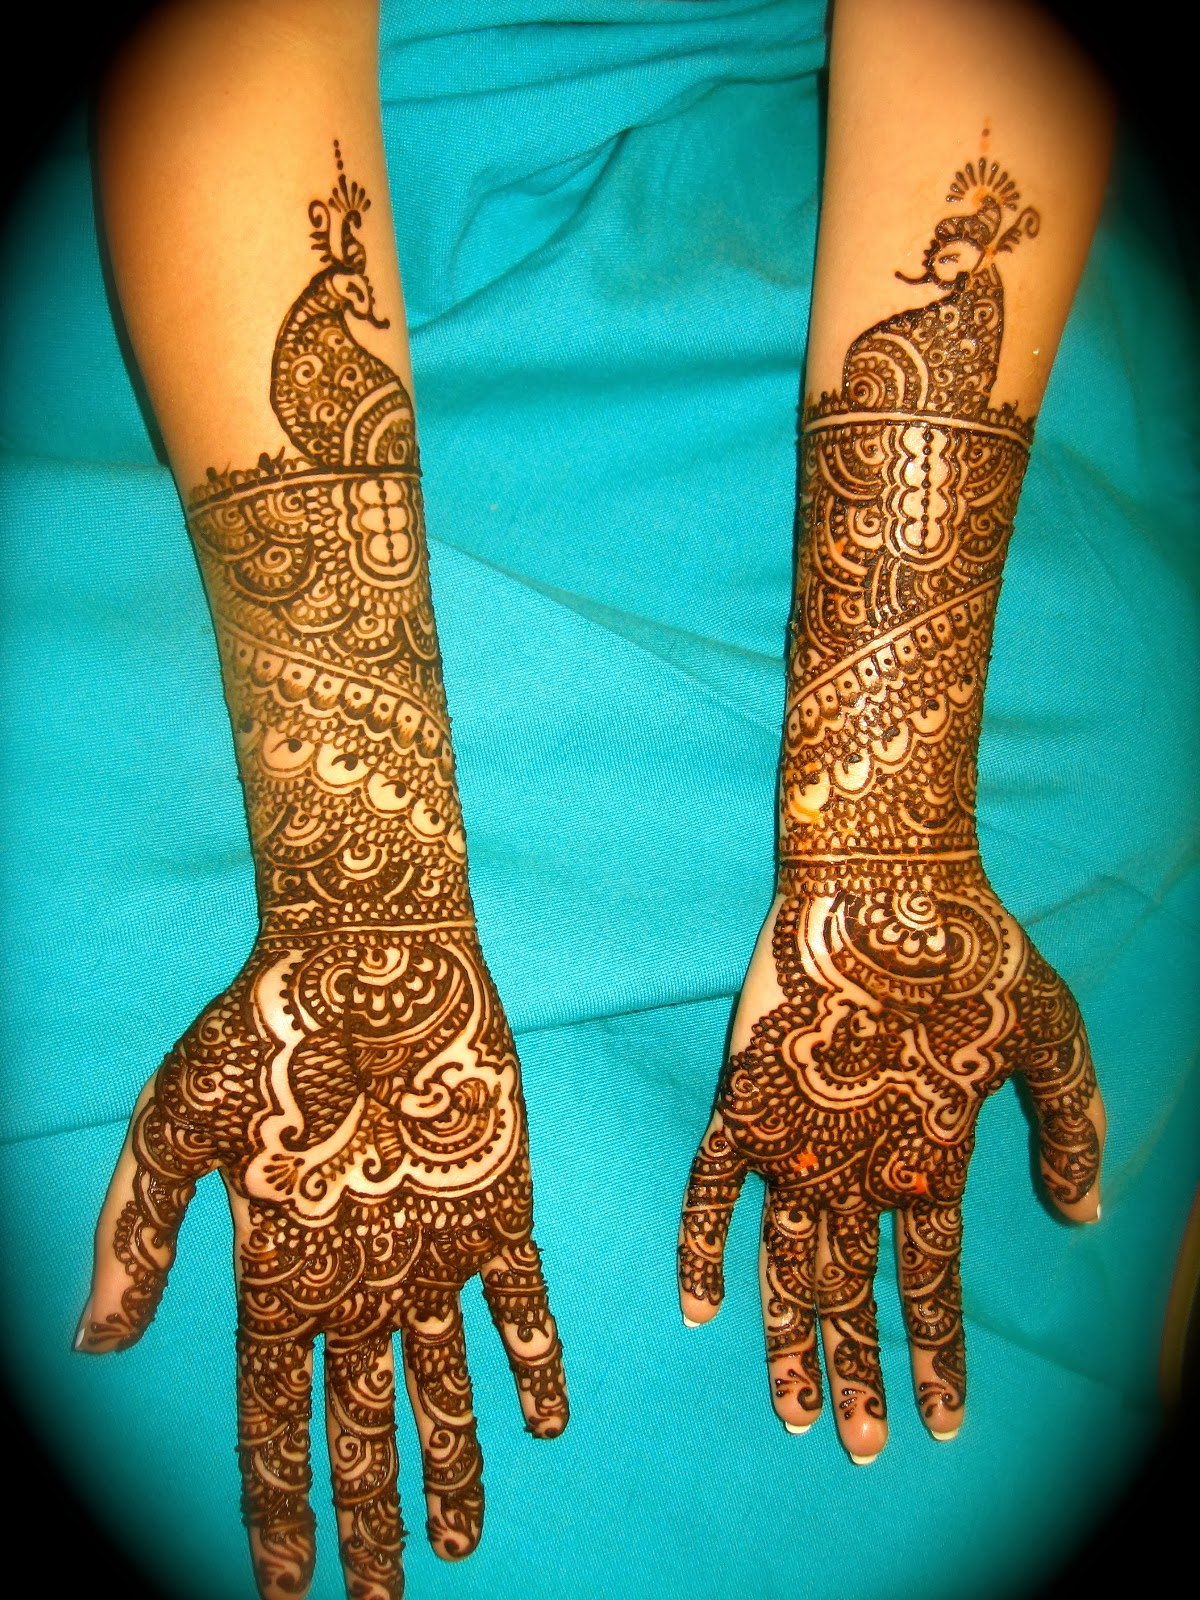 Best Mehndi Designs Dulhan Mehndi Designs For Hands Free